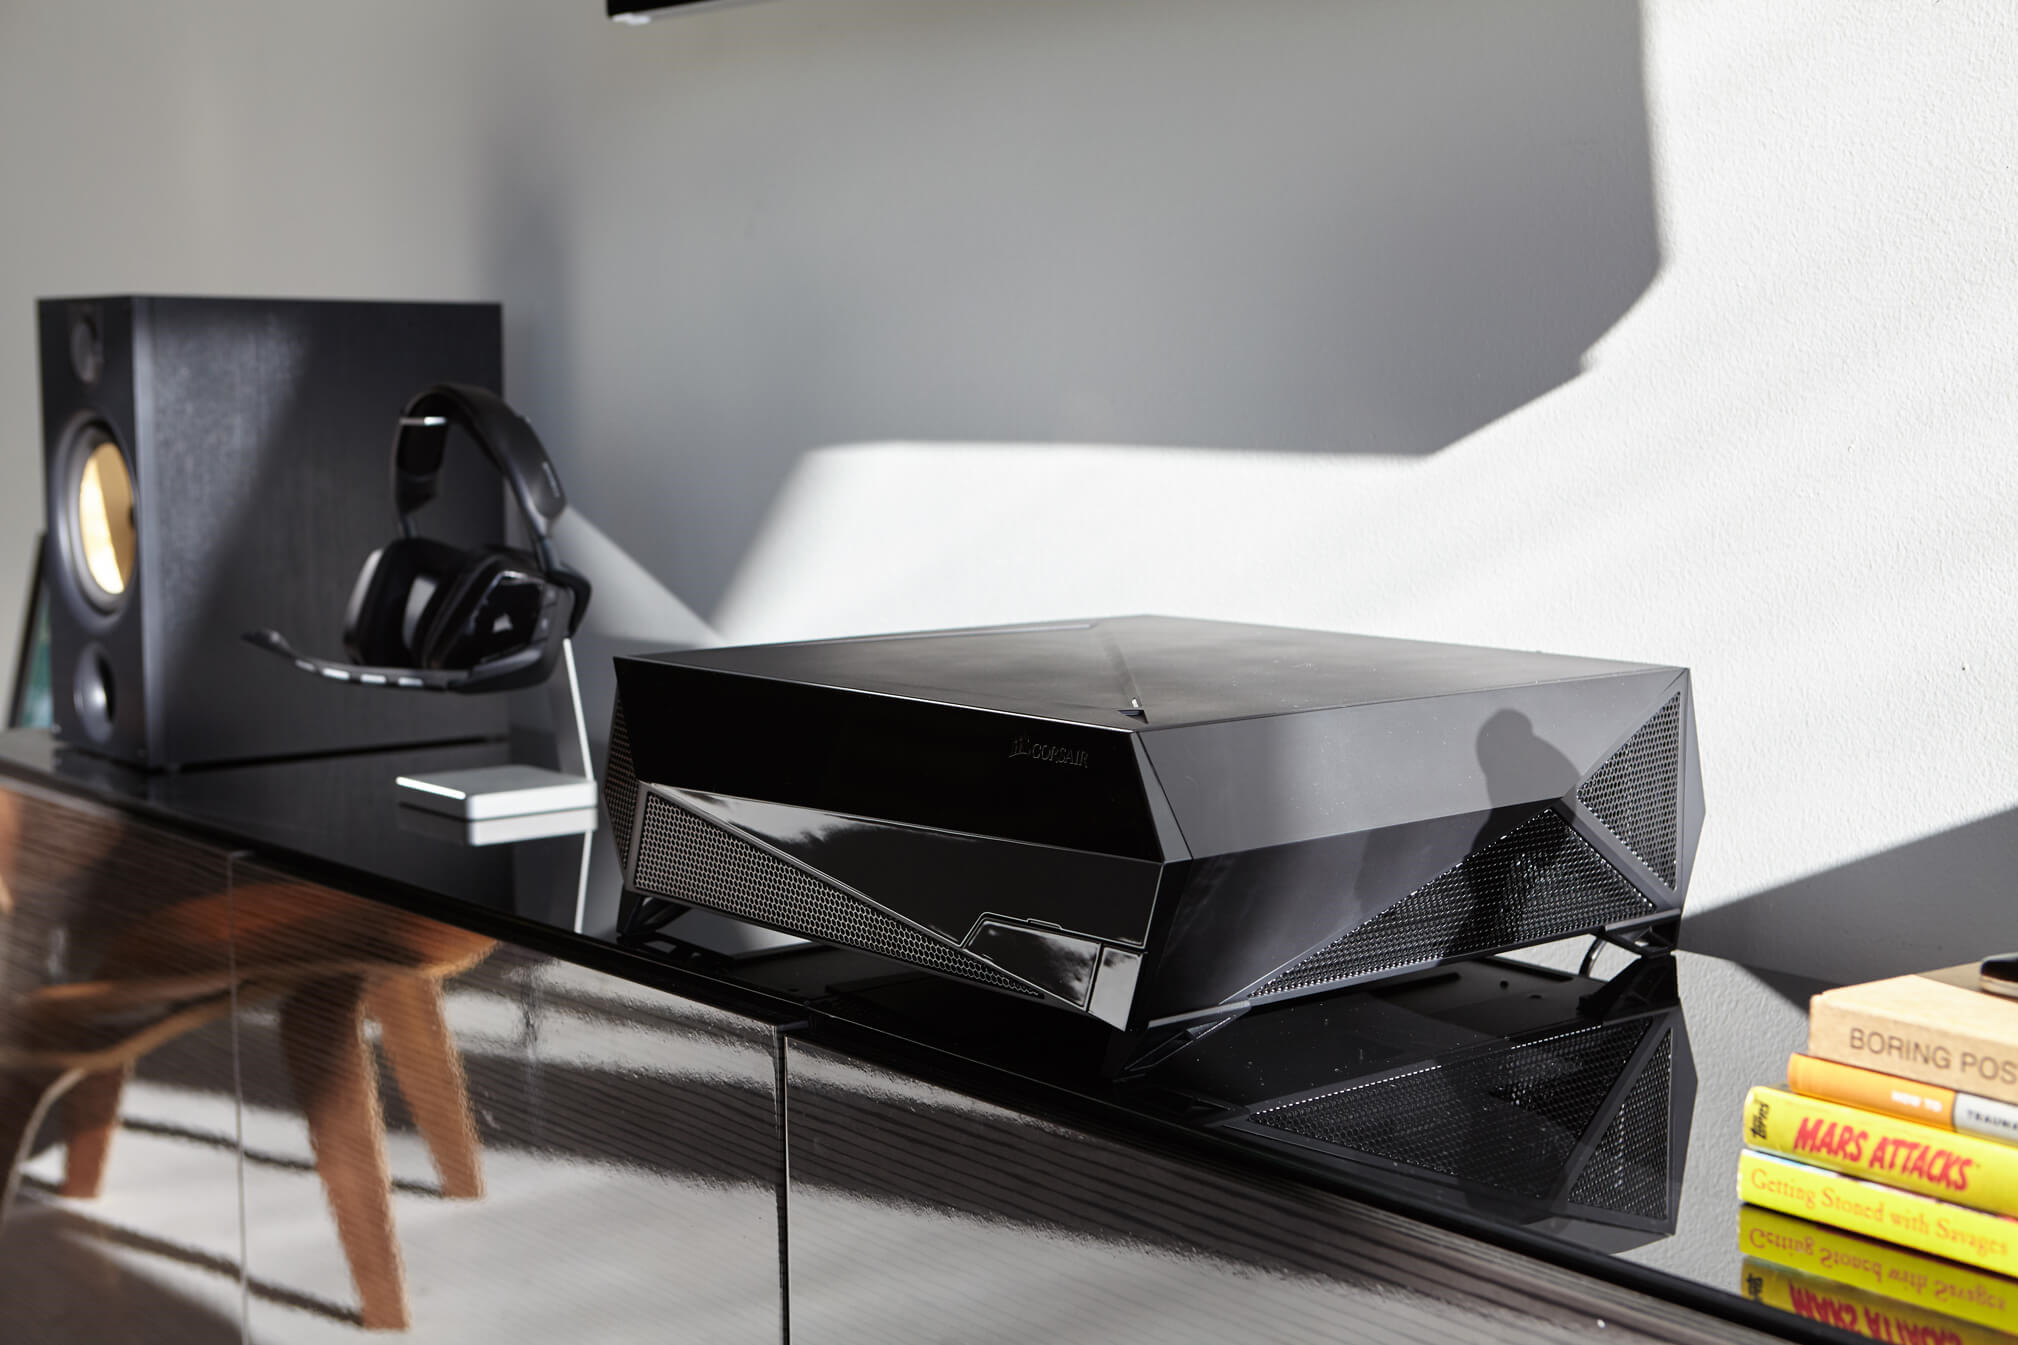 Arresting Corsair Bulldog Allows Installing Graphics Such As Reference Geforce Living Room Is Now Available Bulldog Pc Barebone Internal Architecture curbed Bare Bones Furniture